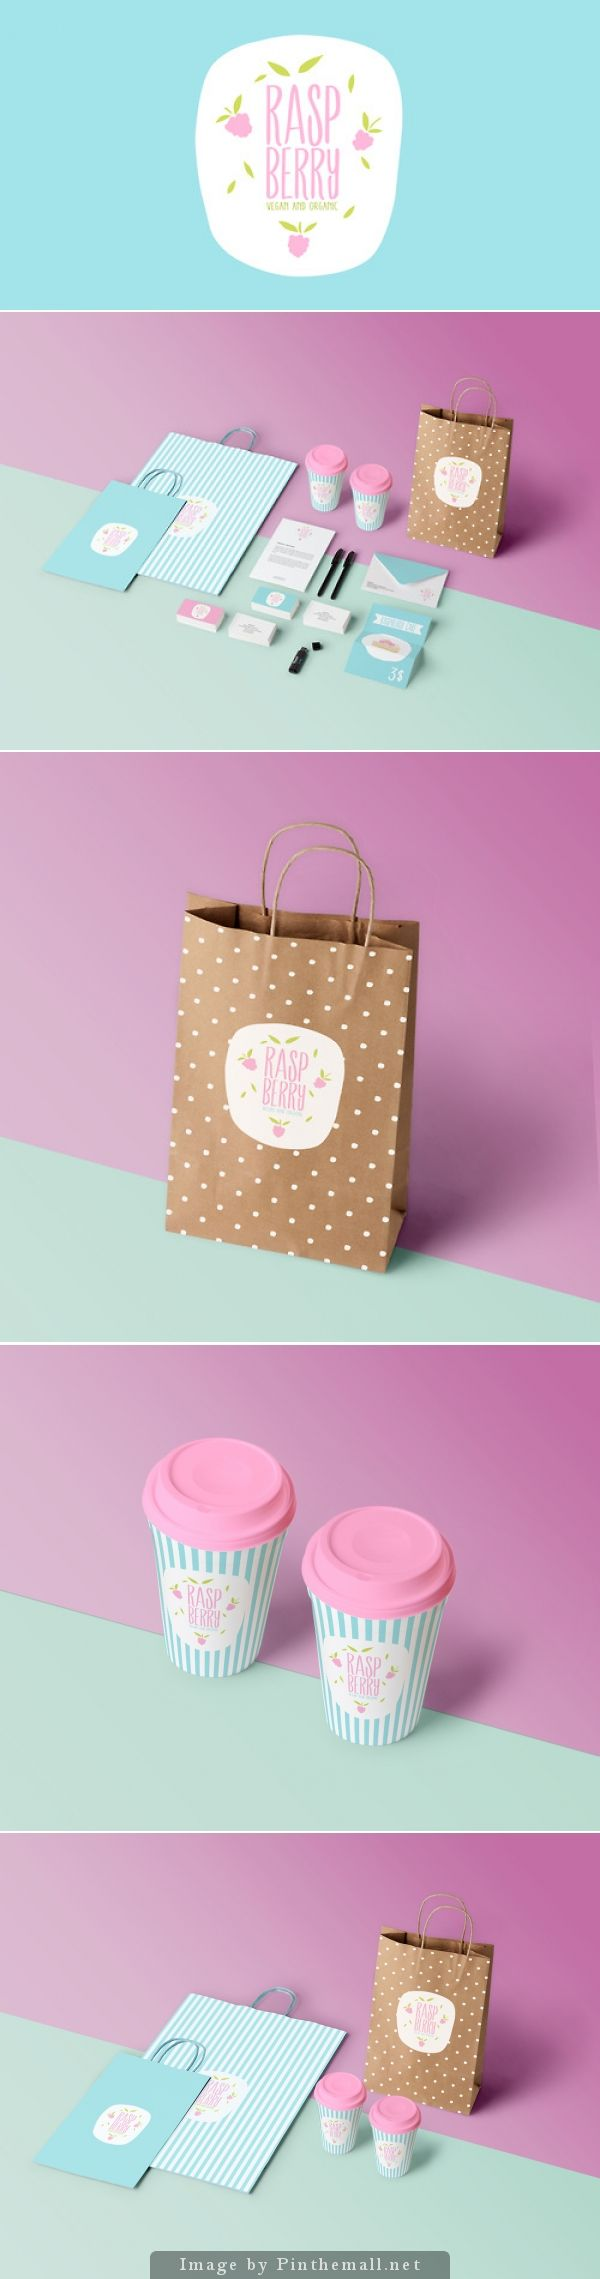 Raspberry - Vegan and Organic Confectionery by Anna Warda is simple yet appealing #packaging #design PD